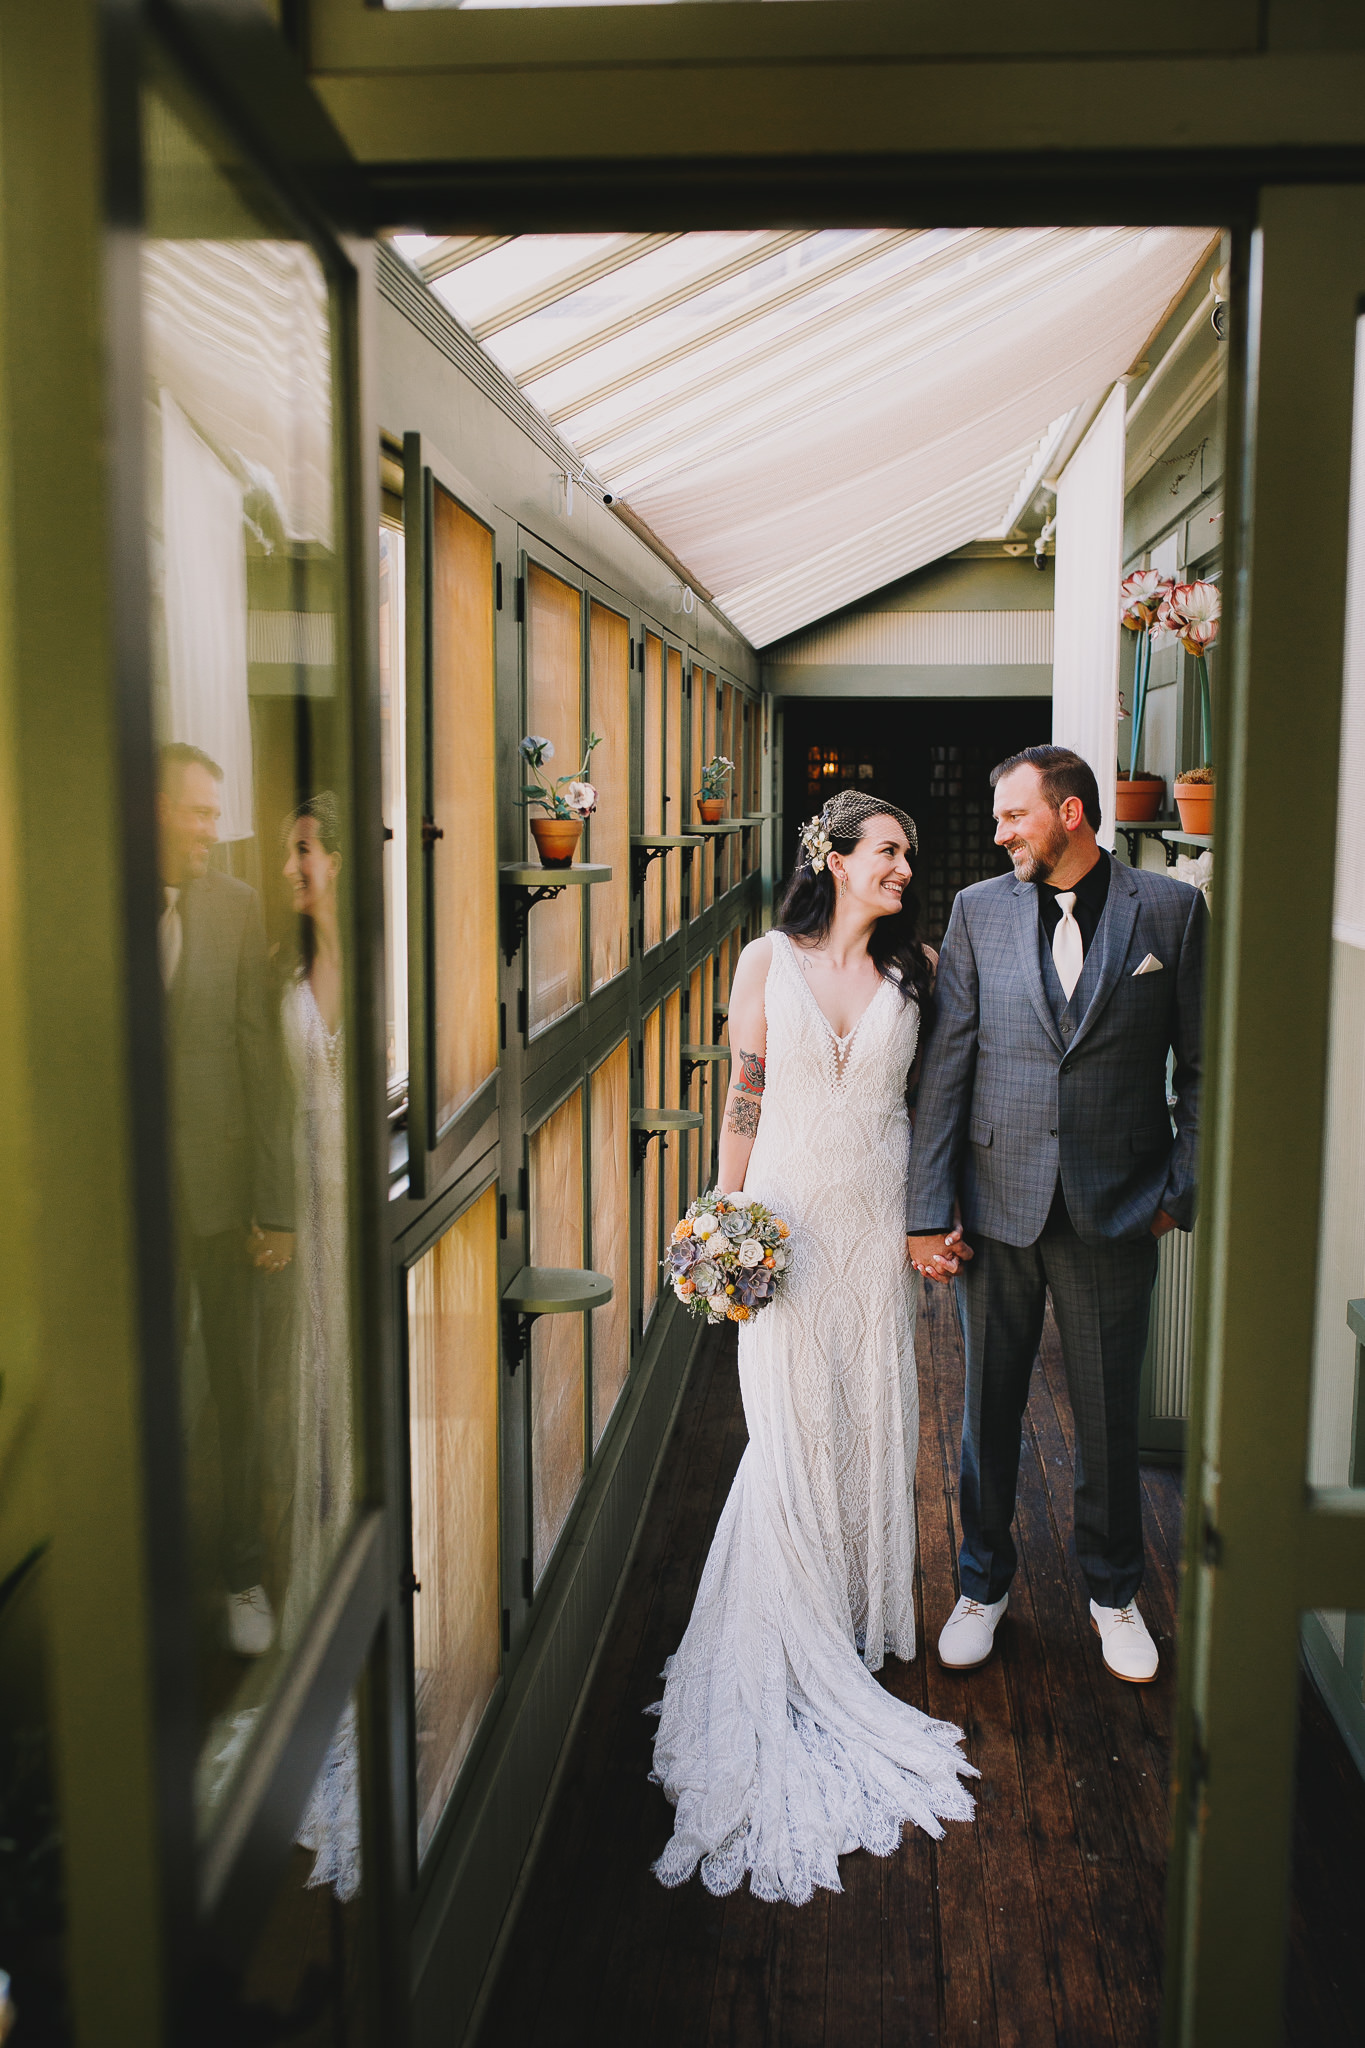 Archer Inspired Photography Sara and Aaron Winchester Mystery House NorCal San Jose California Wedding Photographer-276.jpg